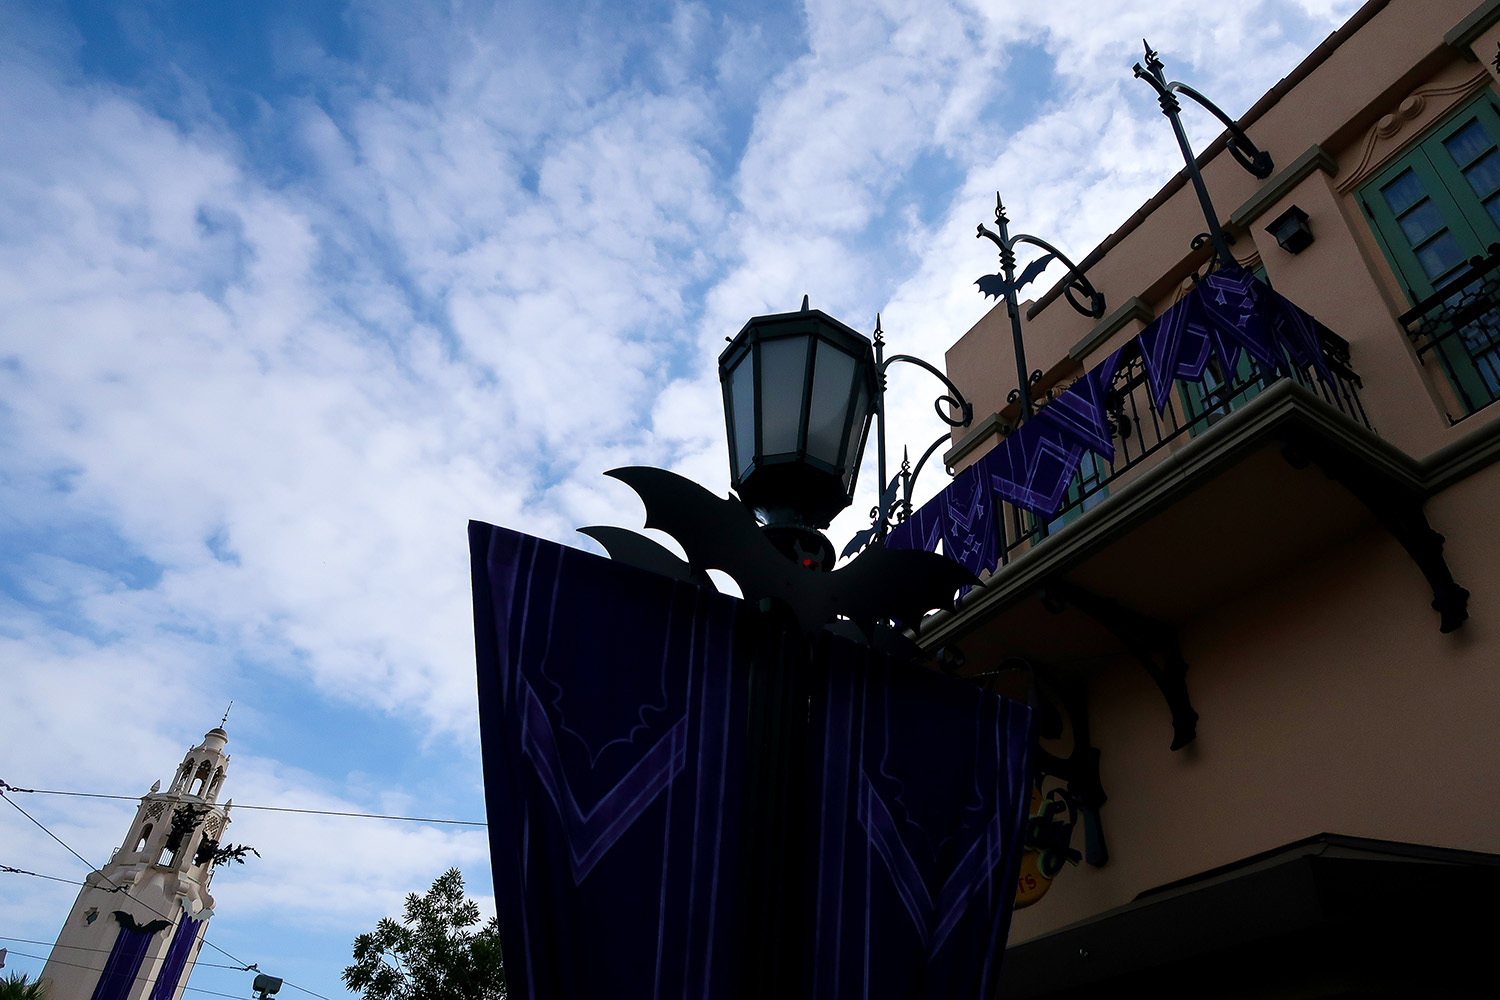 The Bat Decor for Halloween in California Adventure is amazing!